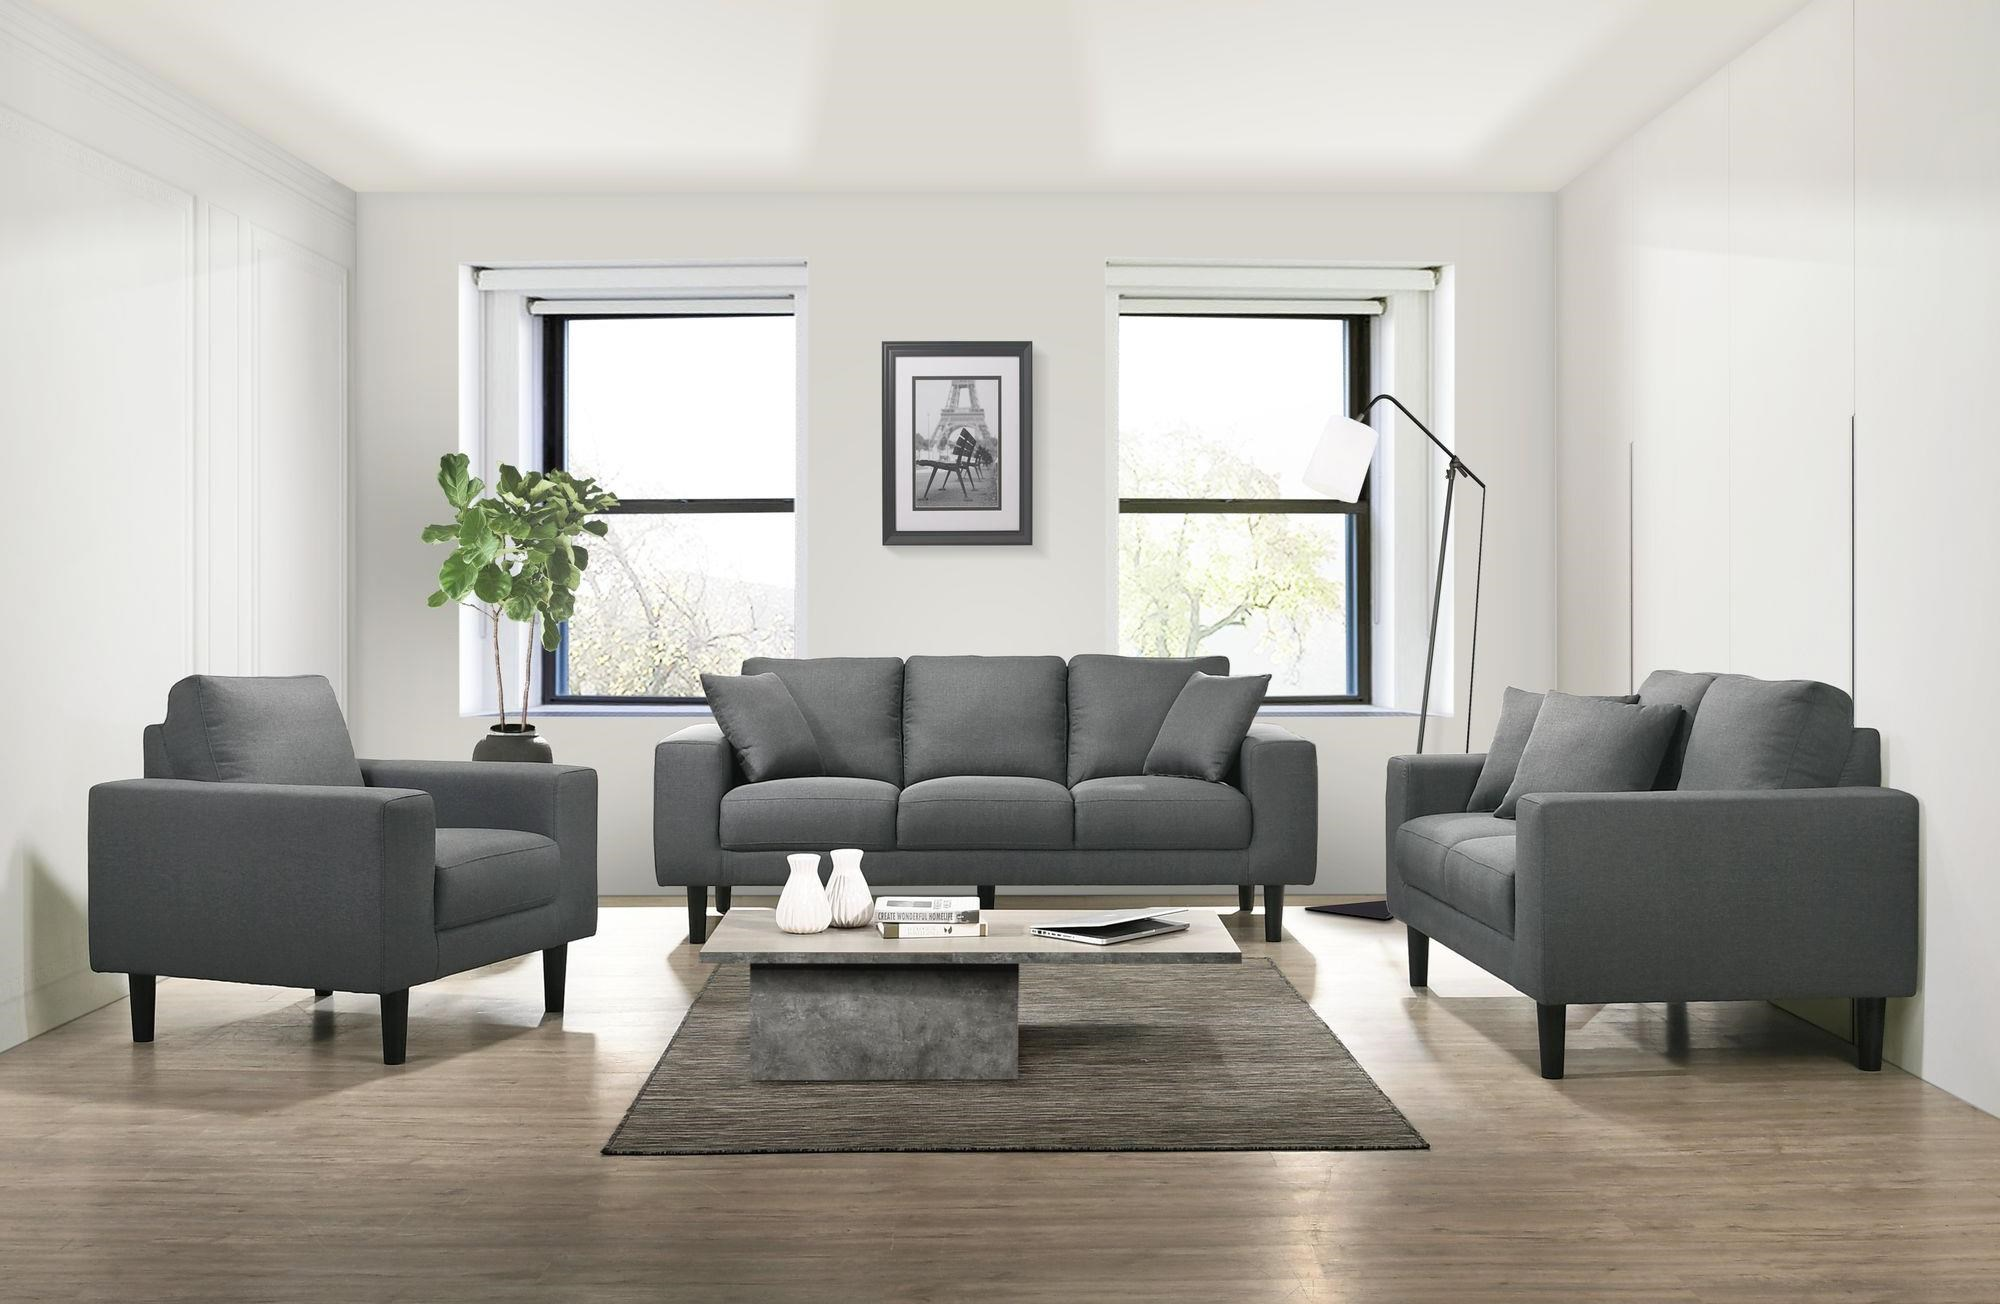 Elements International Apollo Midnight USP-3450 Grey Sofa, Loveseat, And Chair Living Room Set | Sam Levitz Furniture | Stationary Living Room Groups